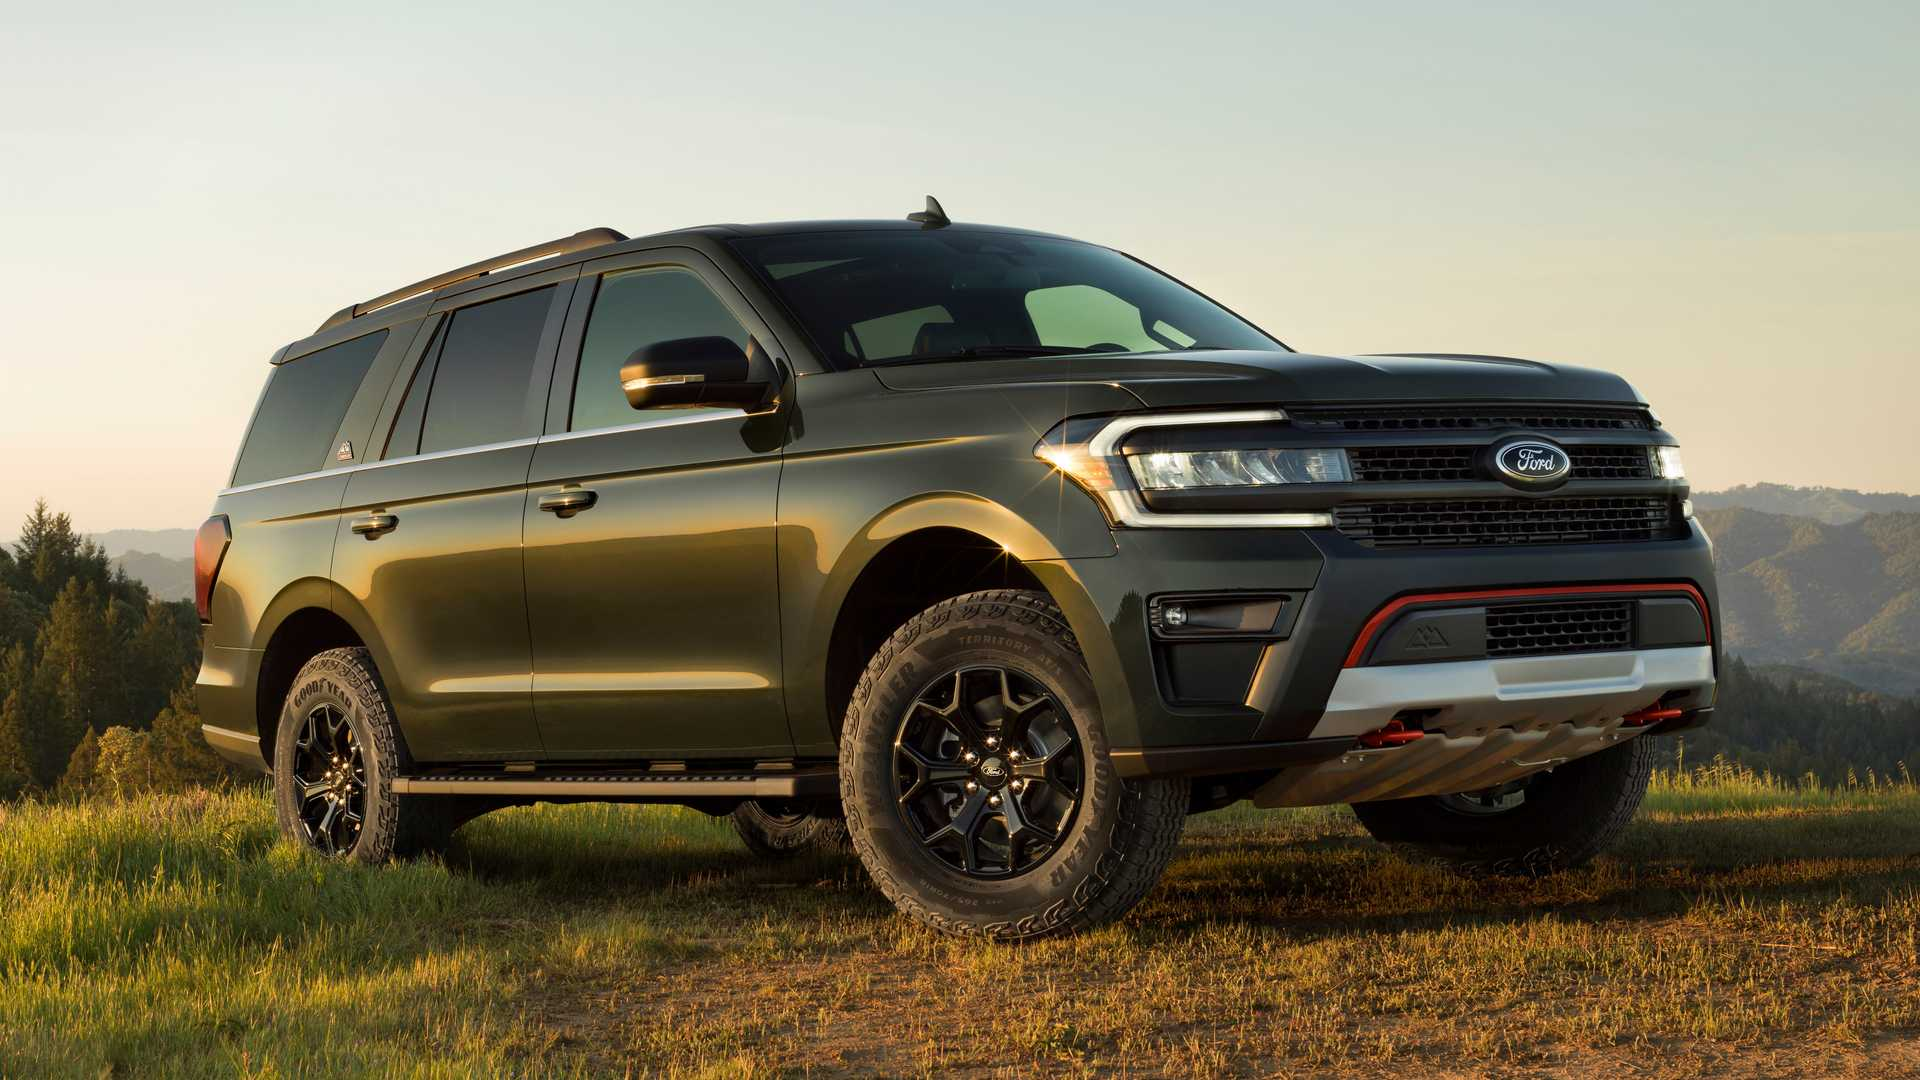 Ford has taken the wraps off its 2022 Evolution model, complete with new trim options and a power upgrade.